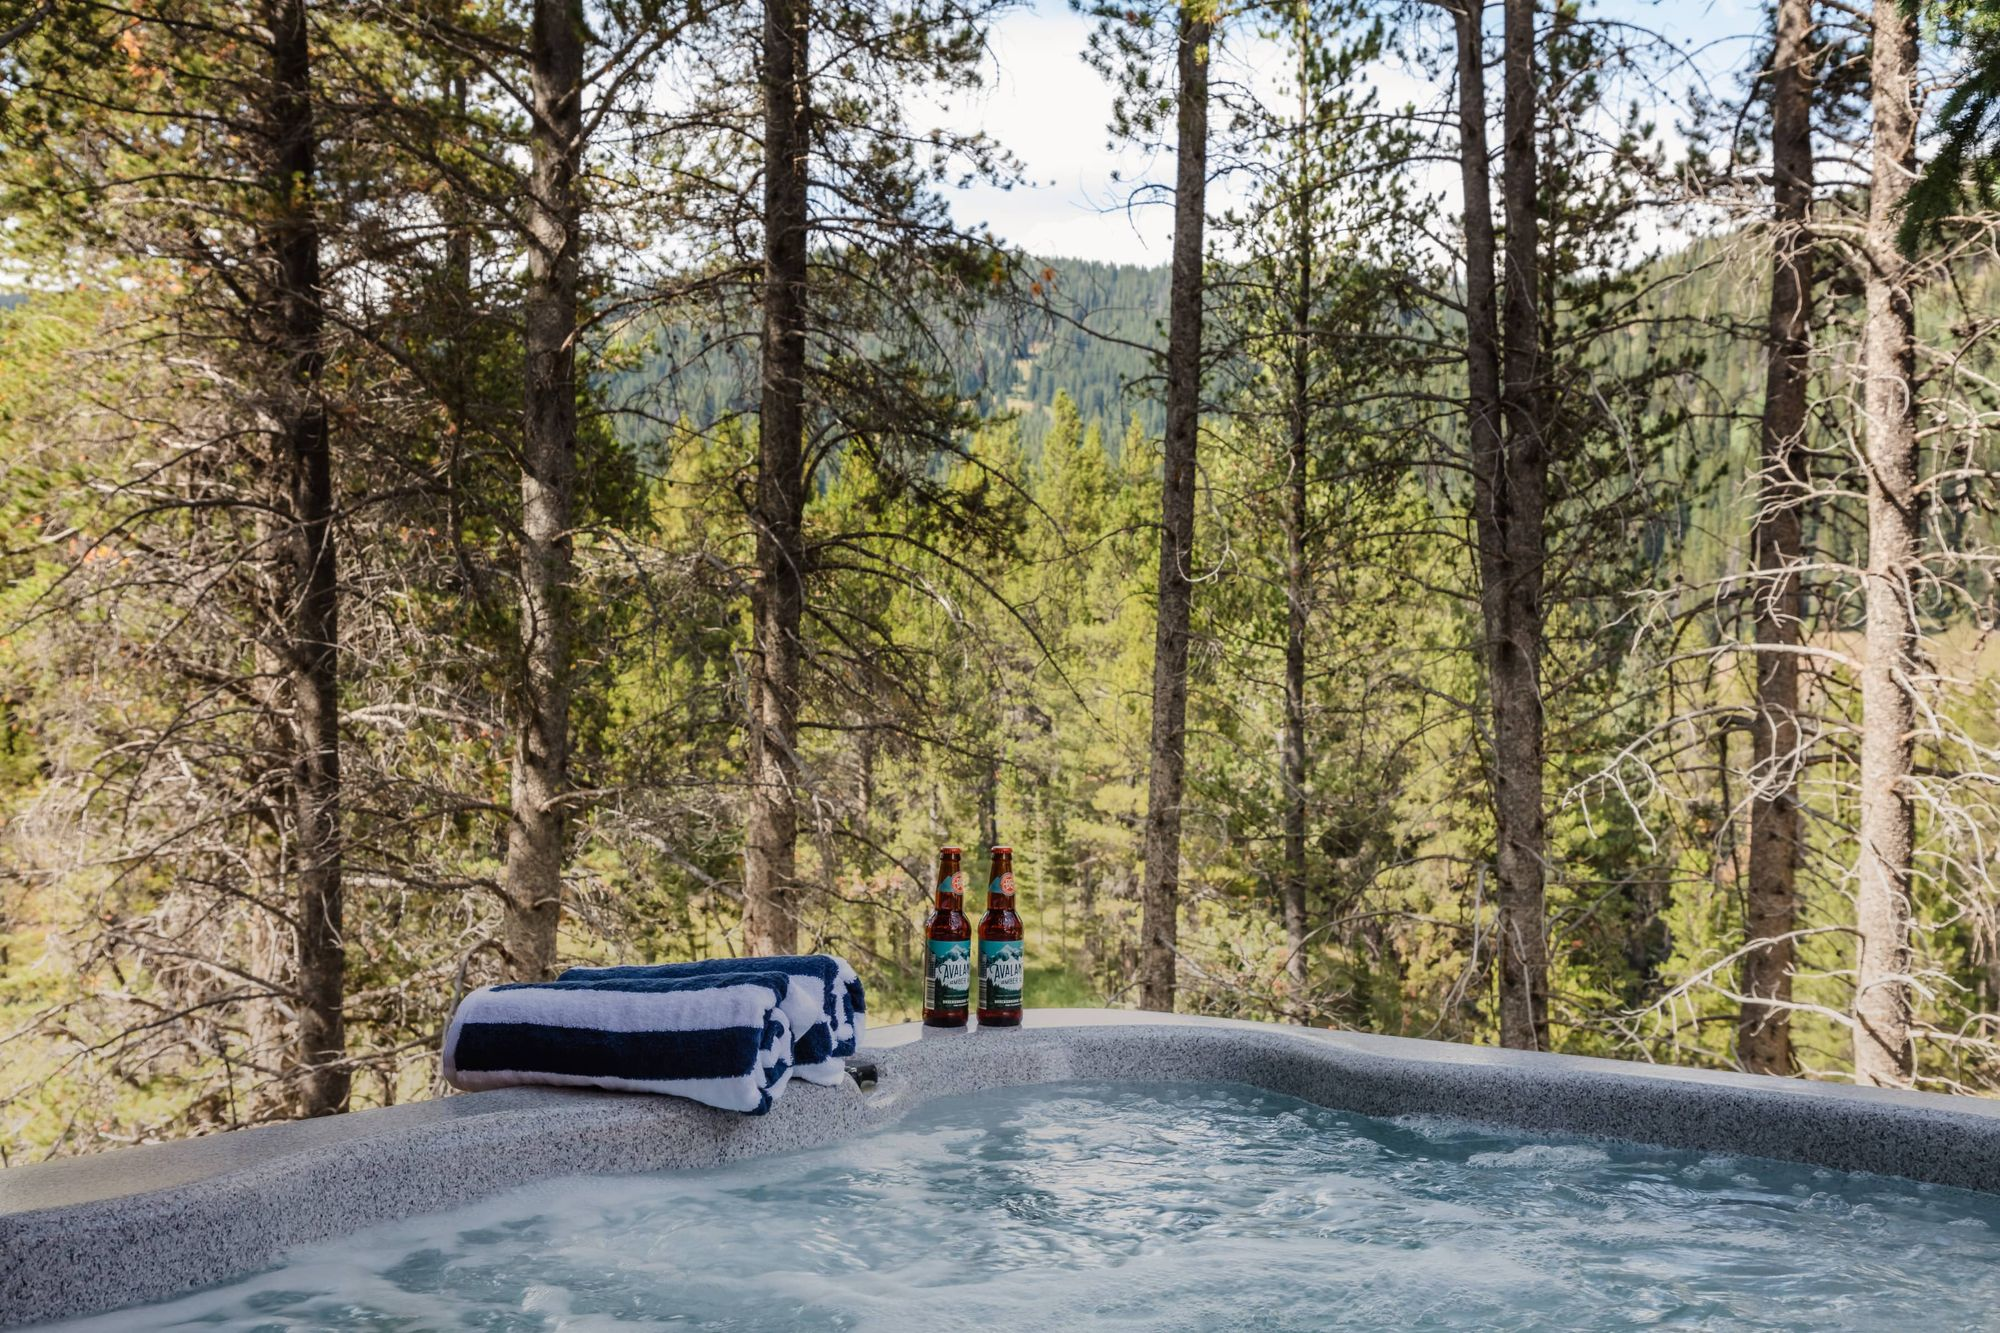 40 Best Things To Do in Breckenridge